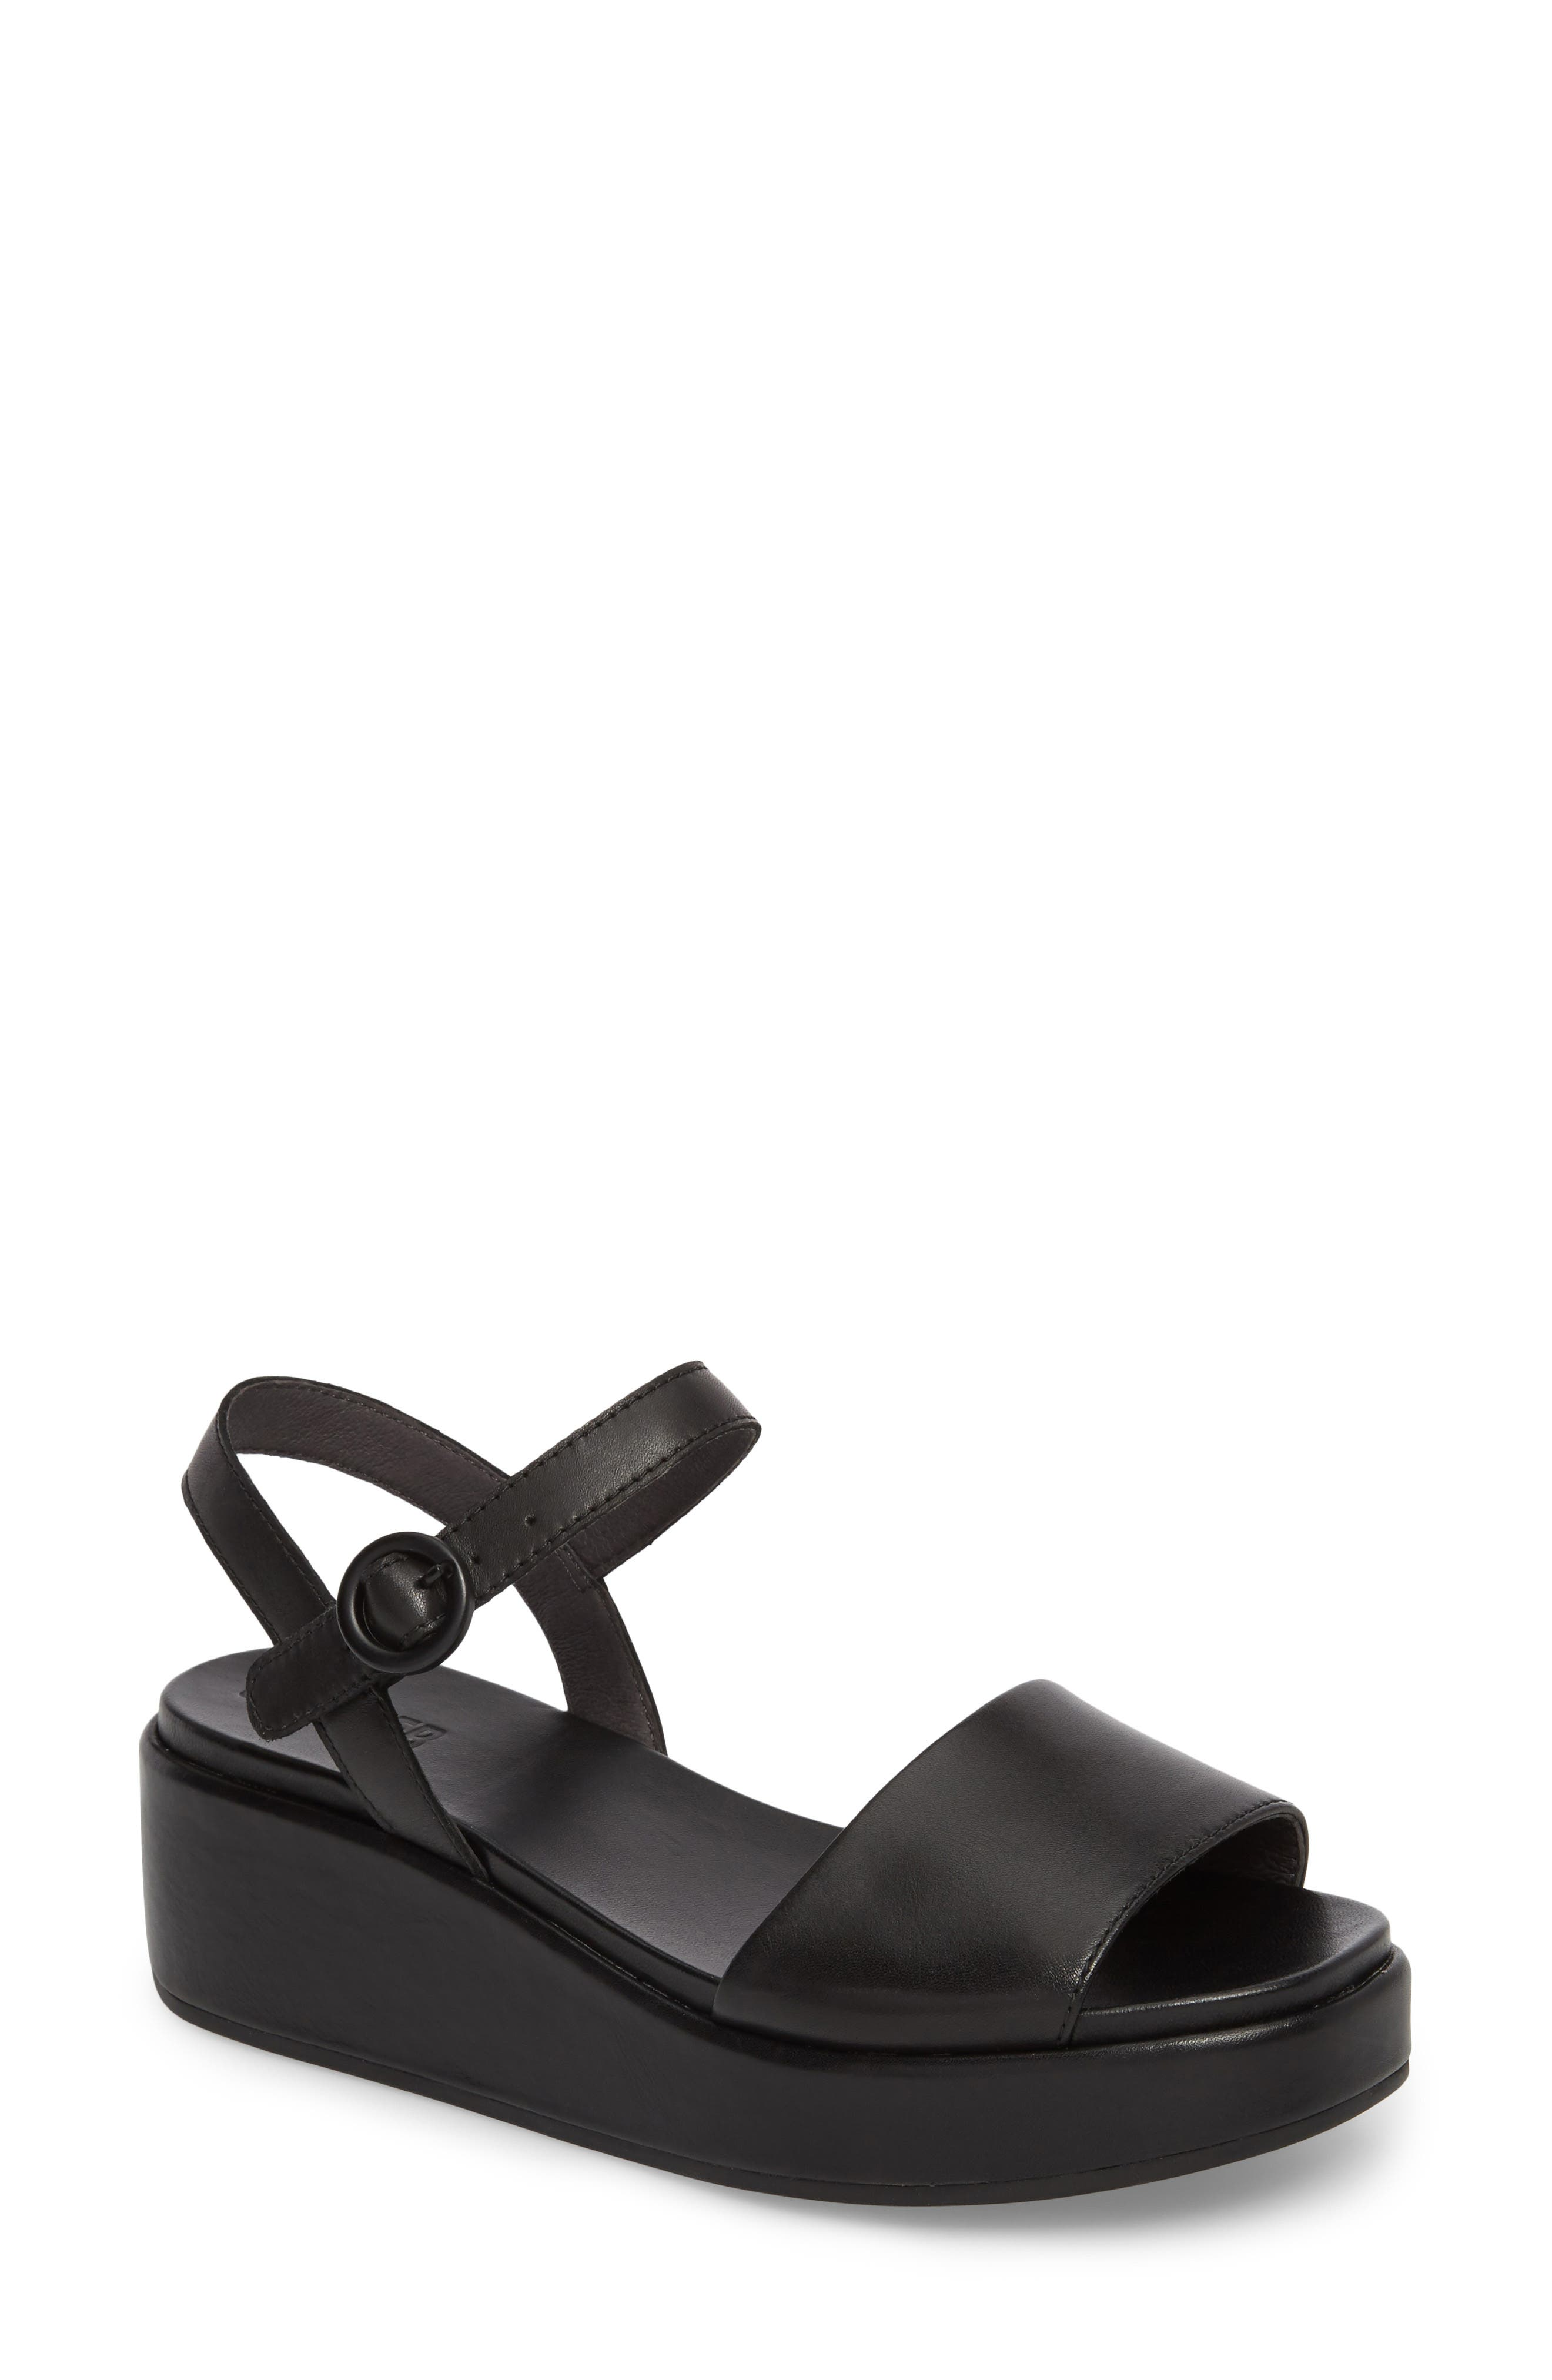 Misia Platform Wedge Sandal,                         Main,                         color, 001